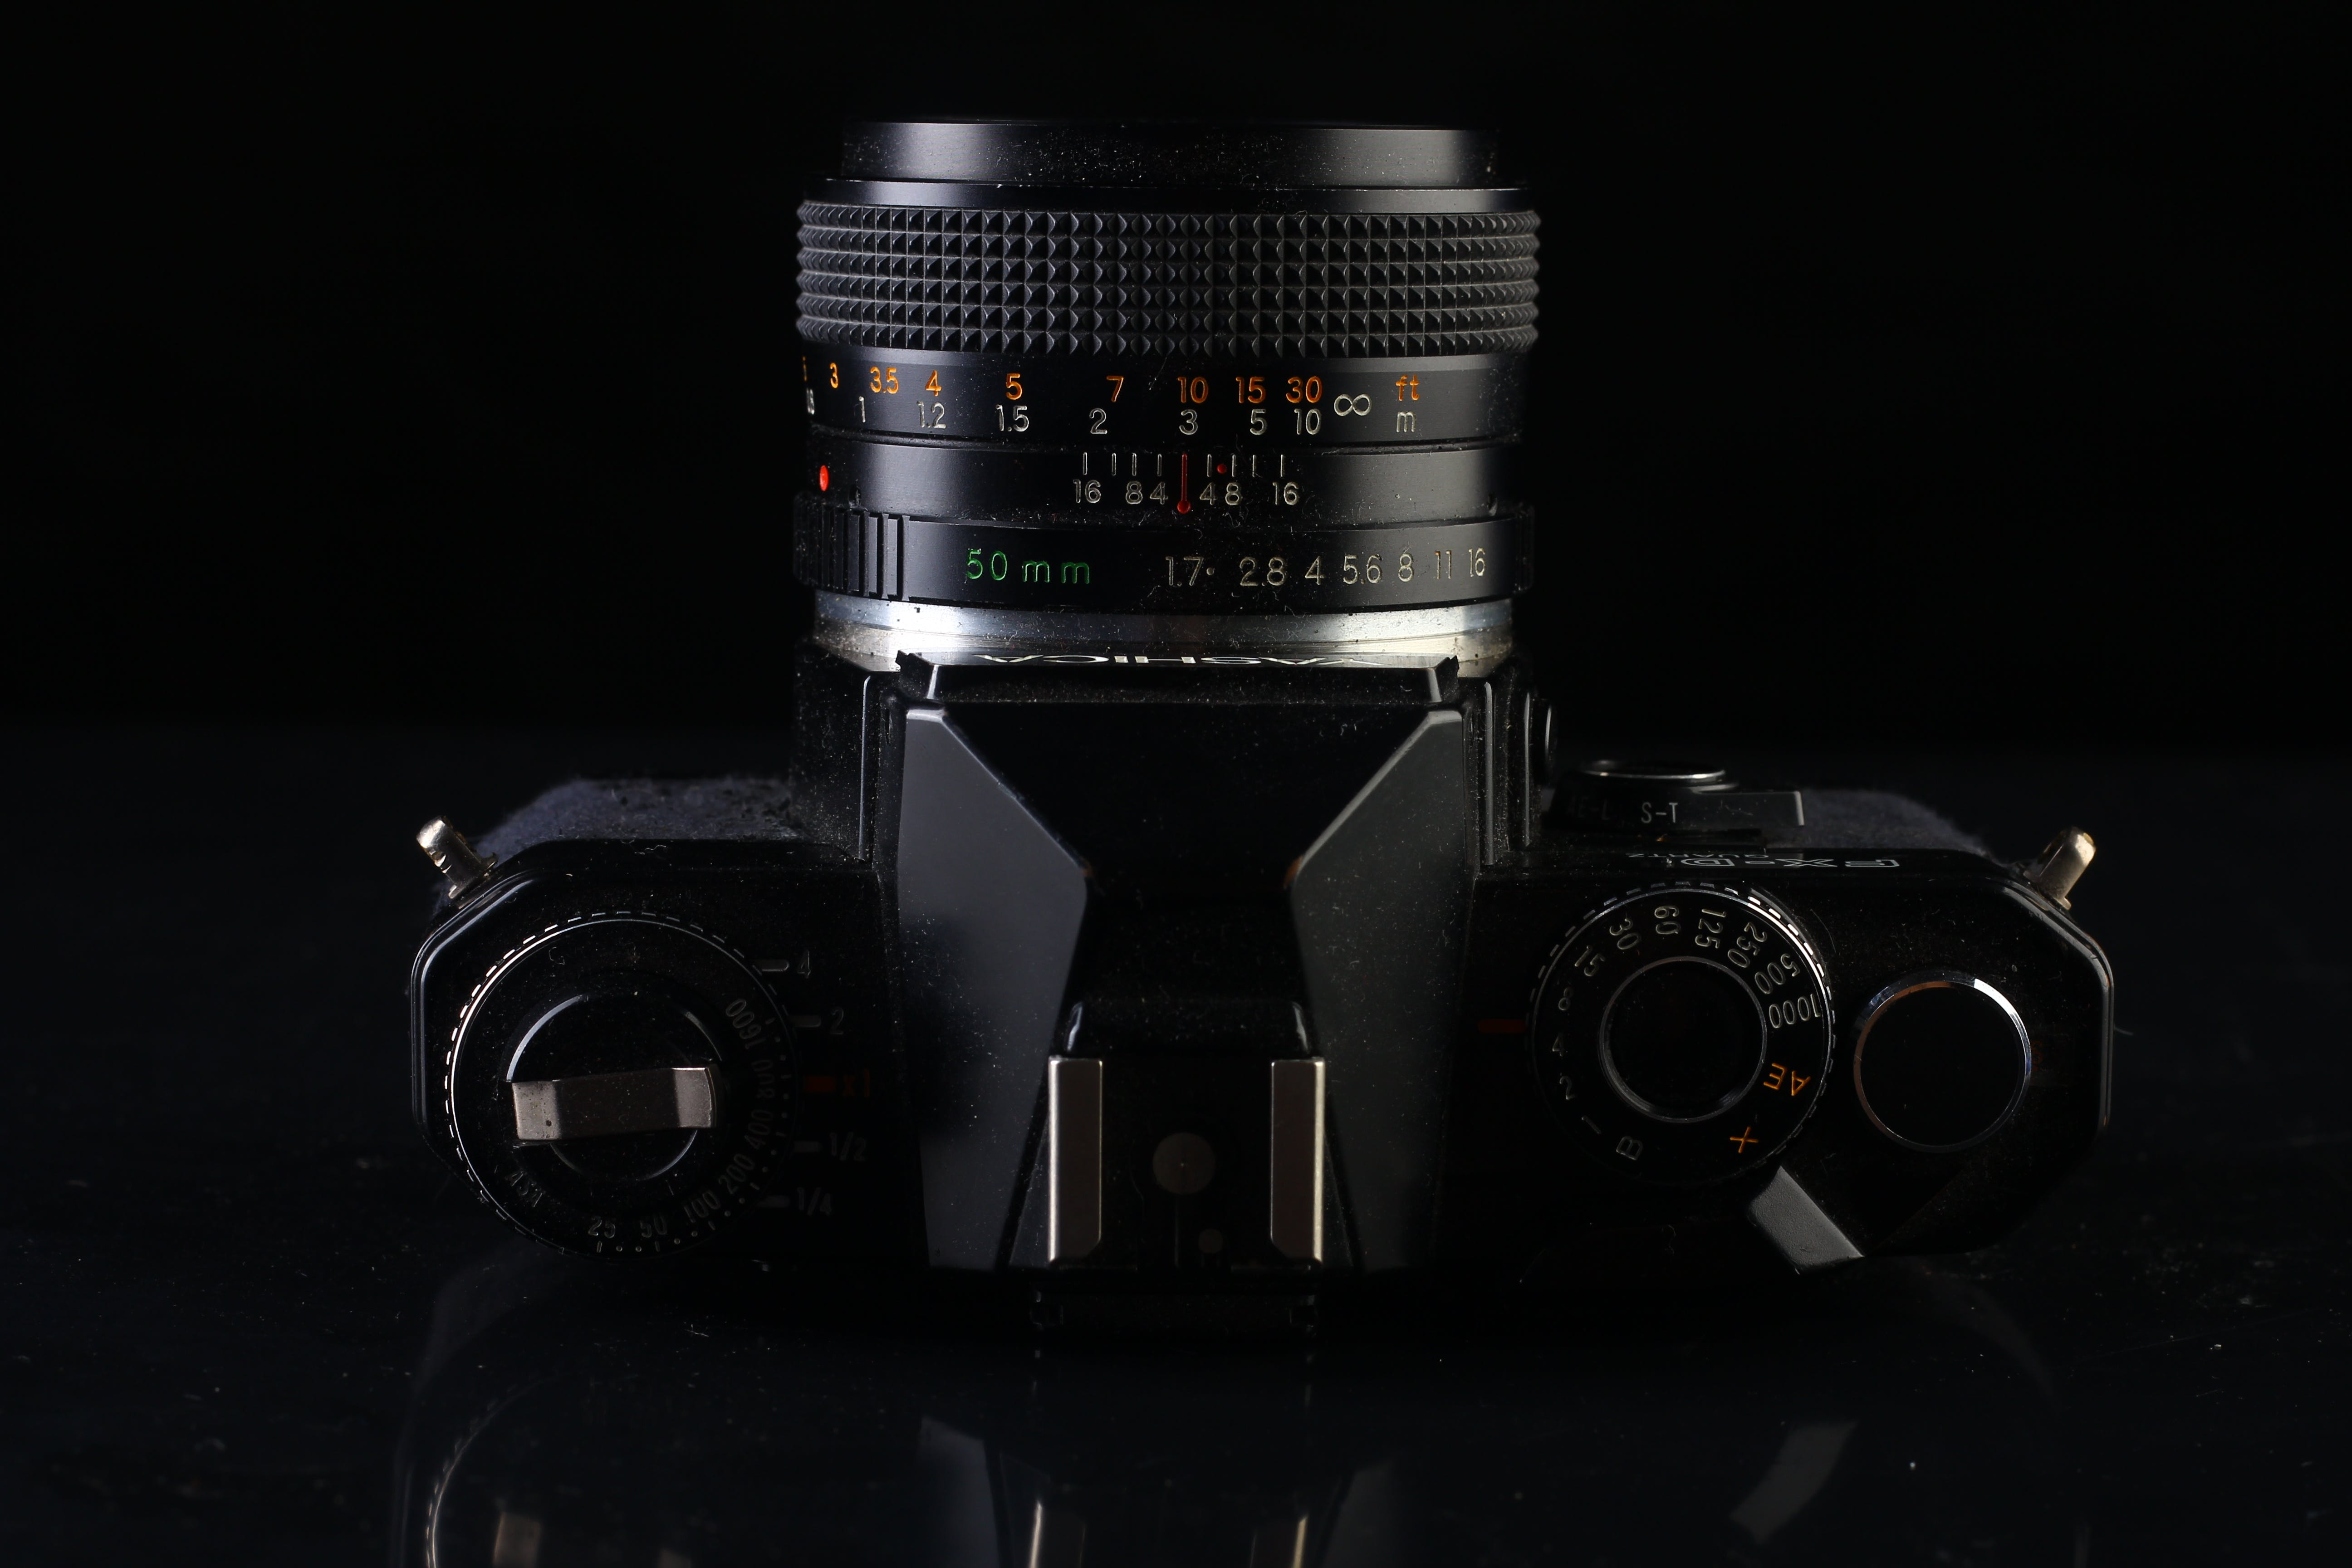 Shallow Focus Photography of Dslr Camera